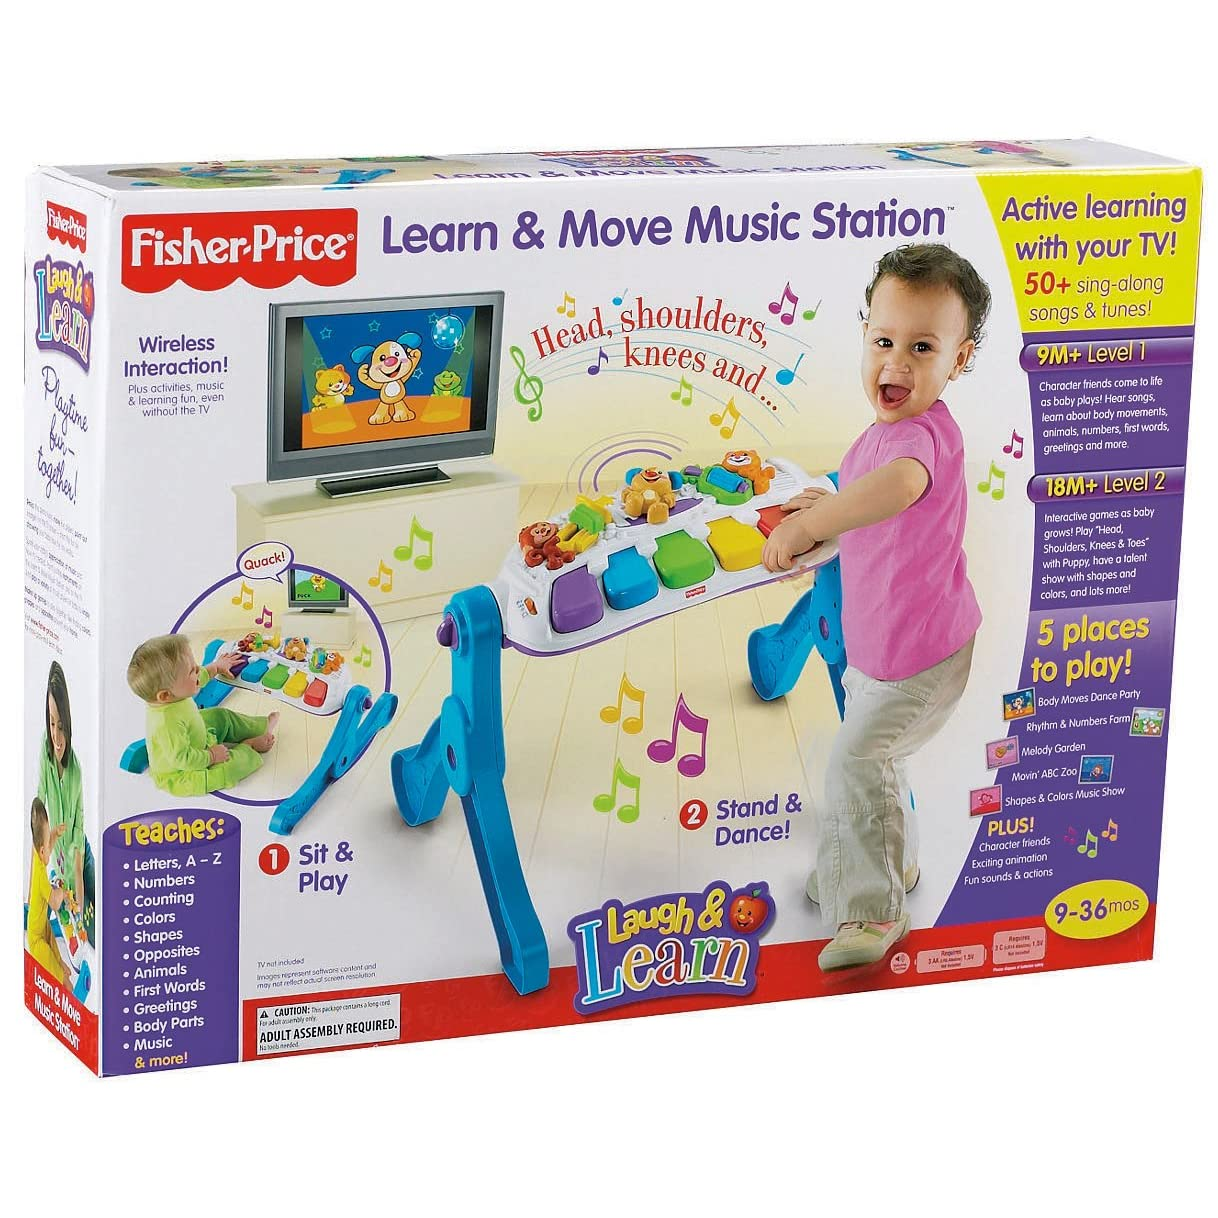 Laugh & Learn Learn & Move Music Station from Fisher-Price